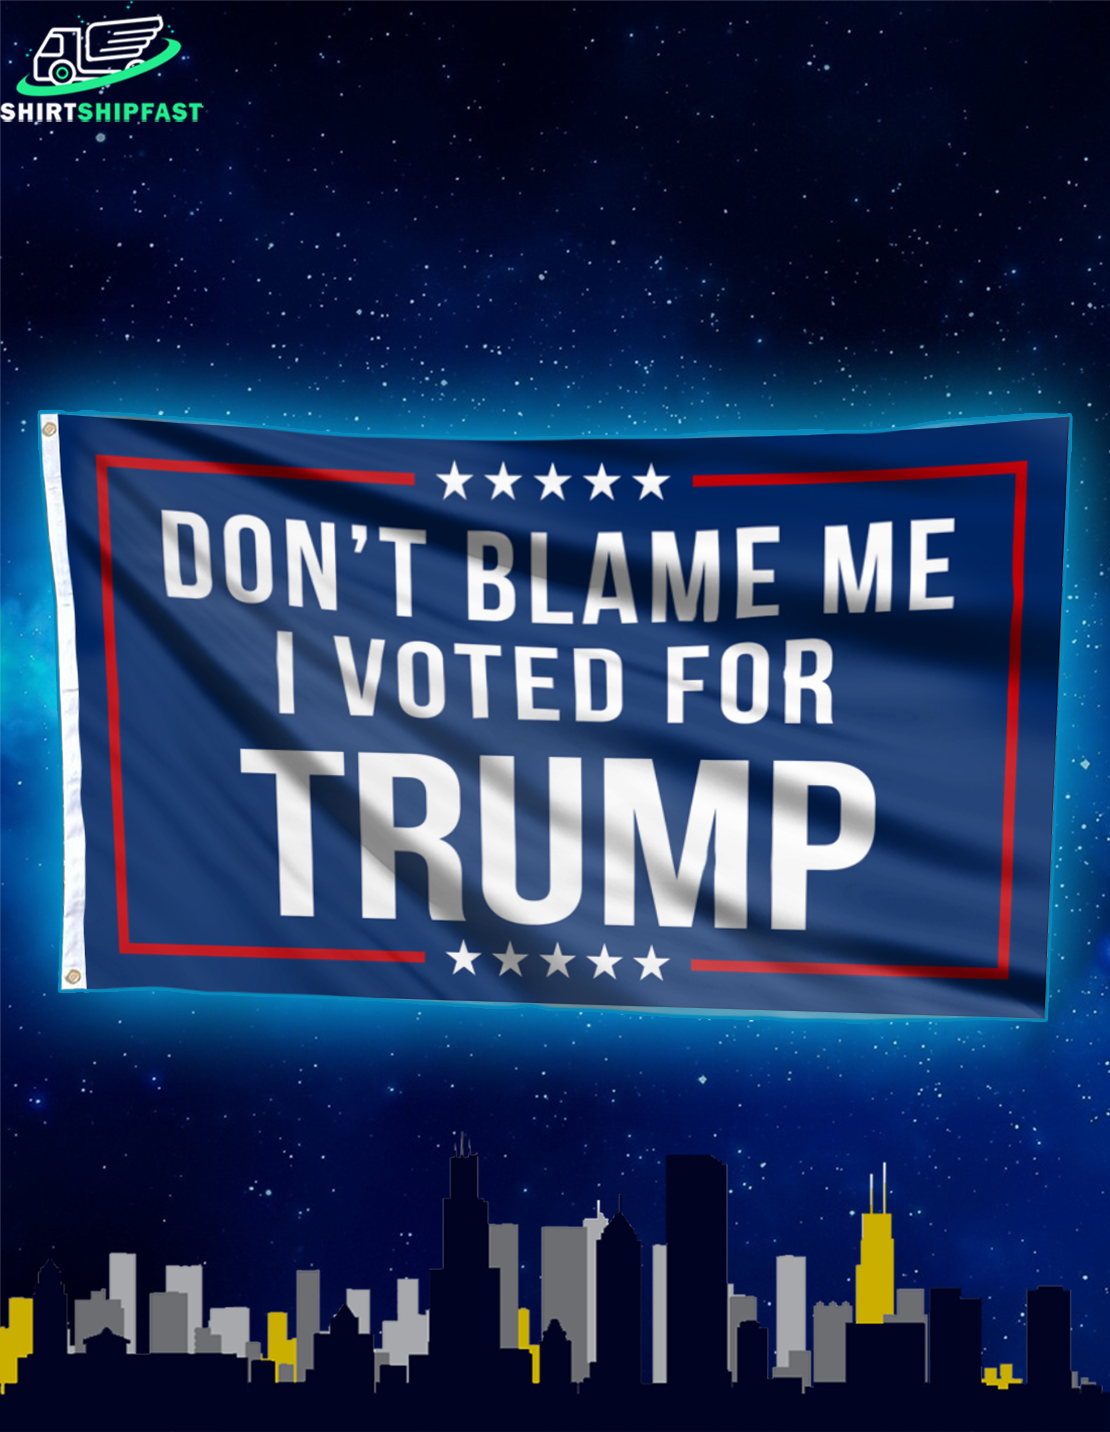 Don't blame me I voted for Trump flag - Picture 2